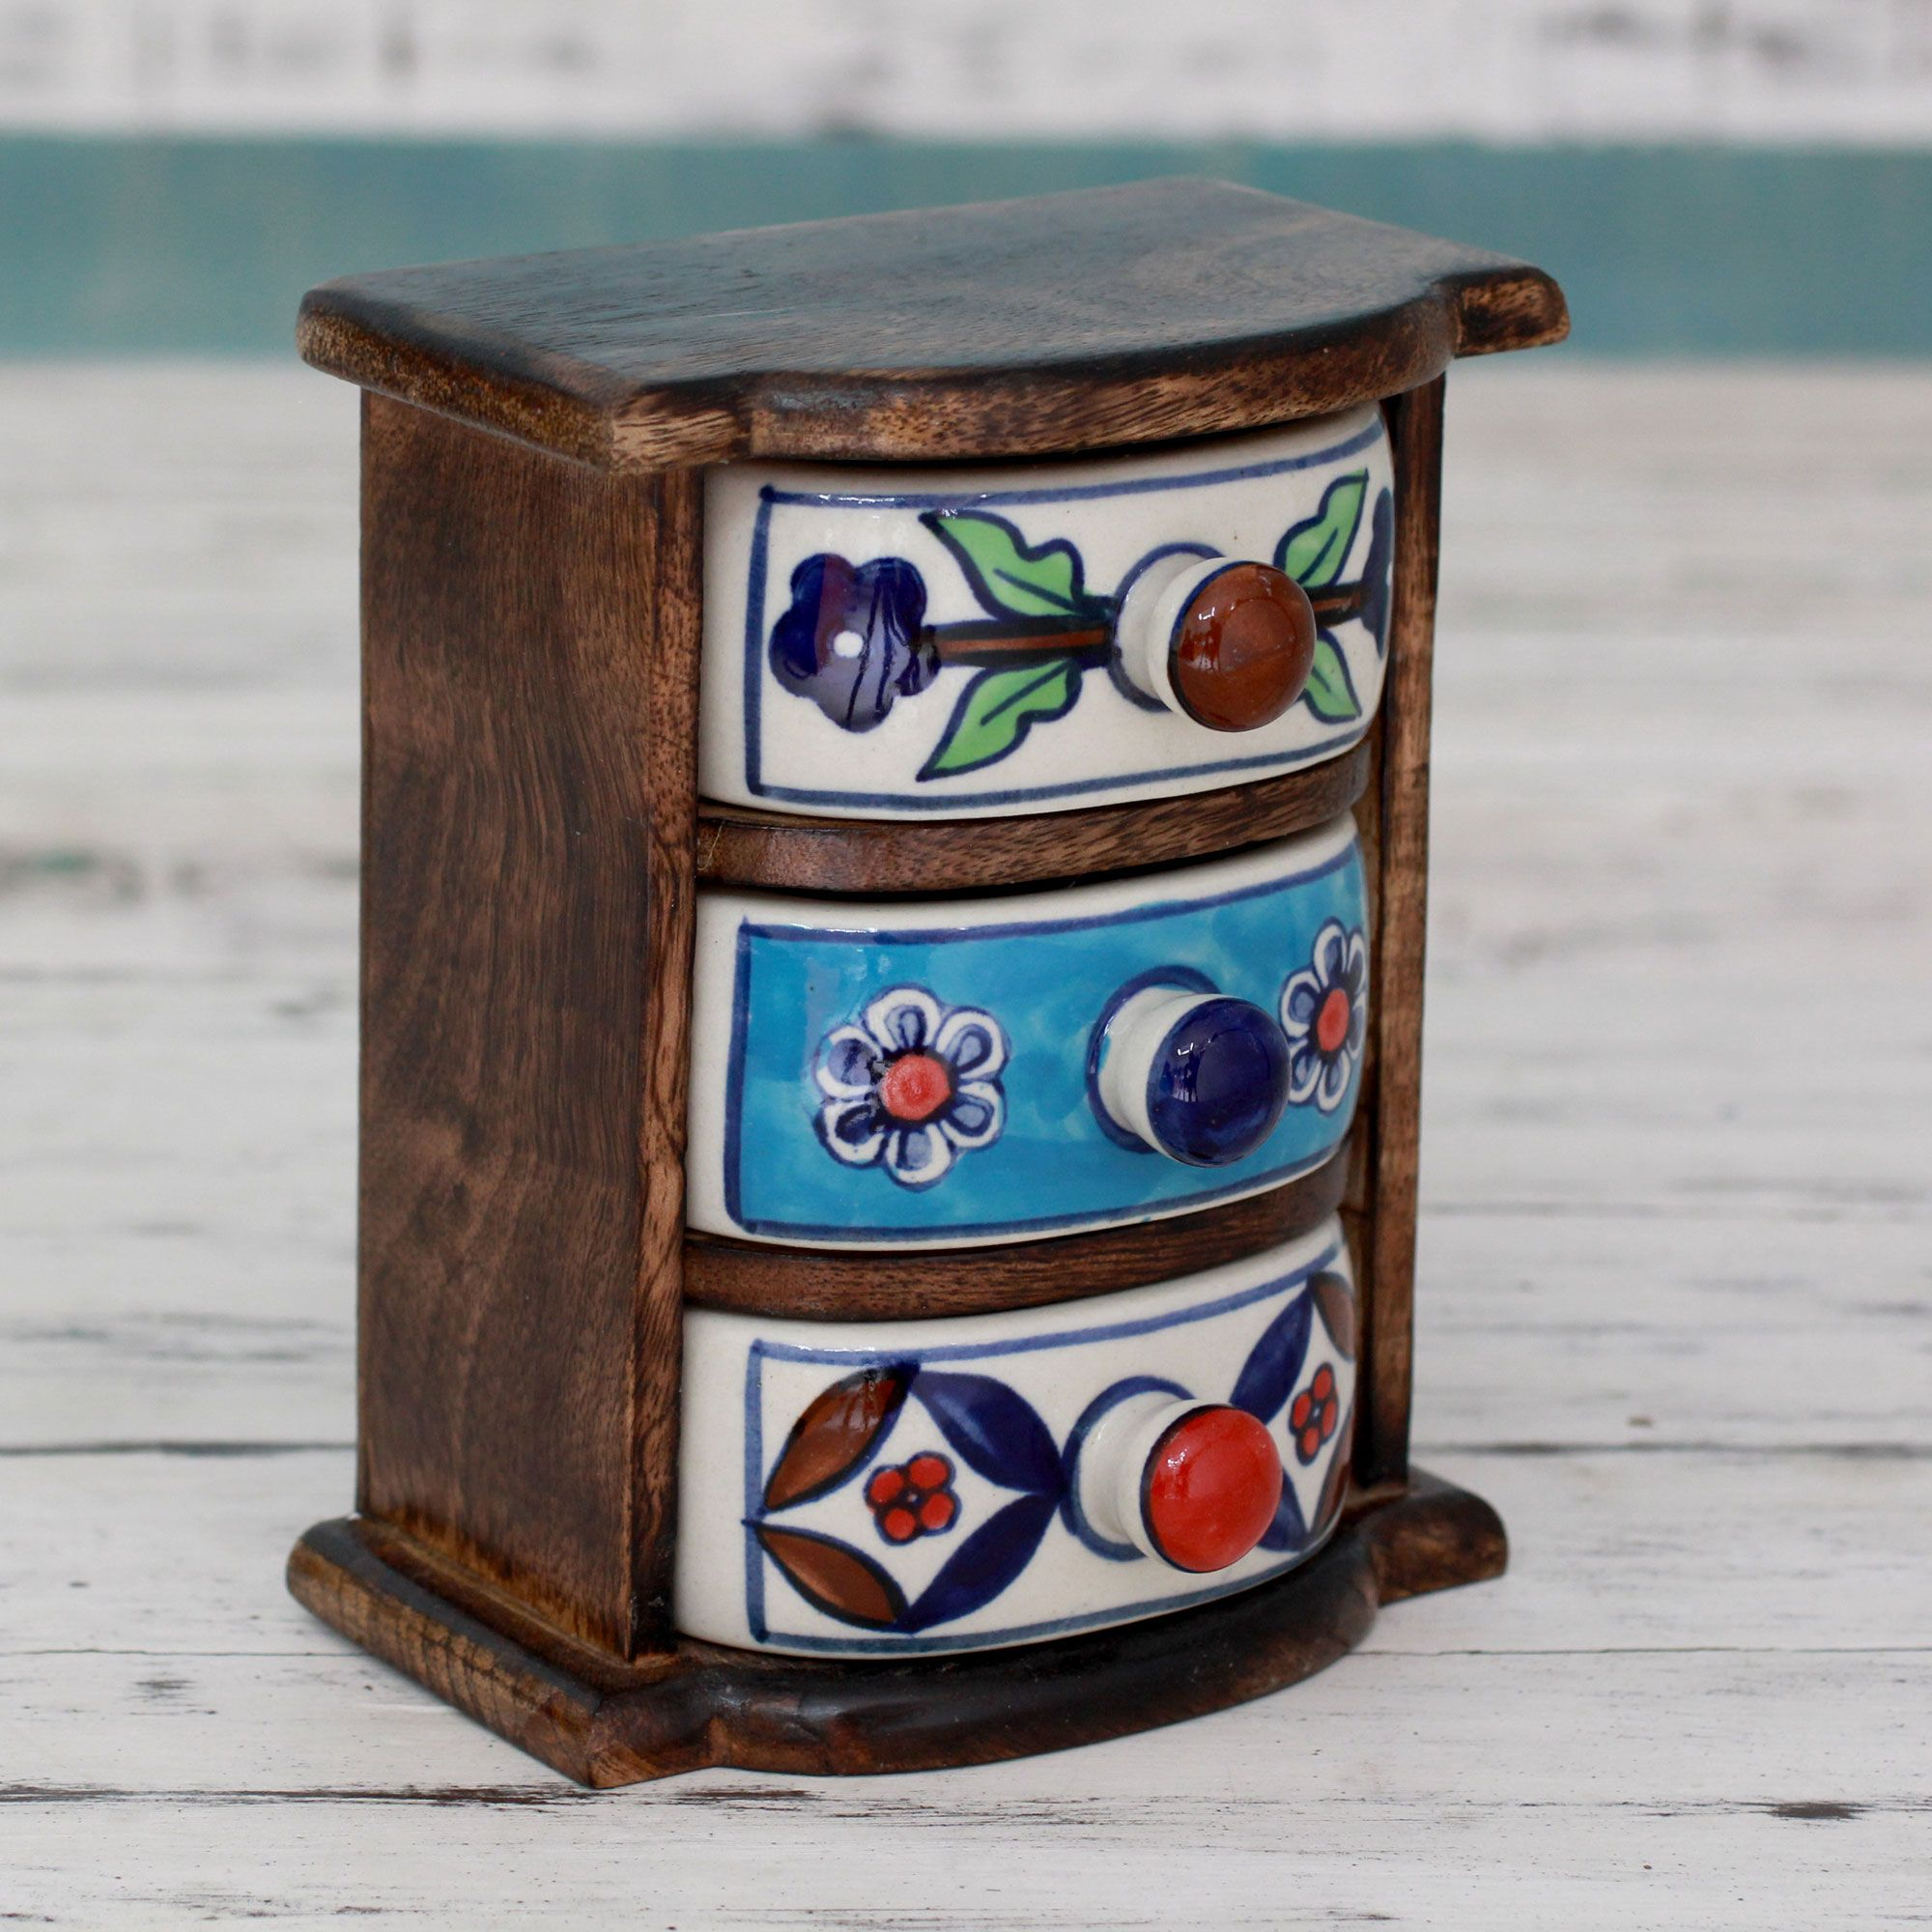 Handmade Small Treasure Chest With 3 Ceramic Drawers From